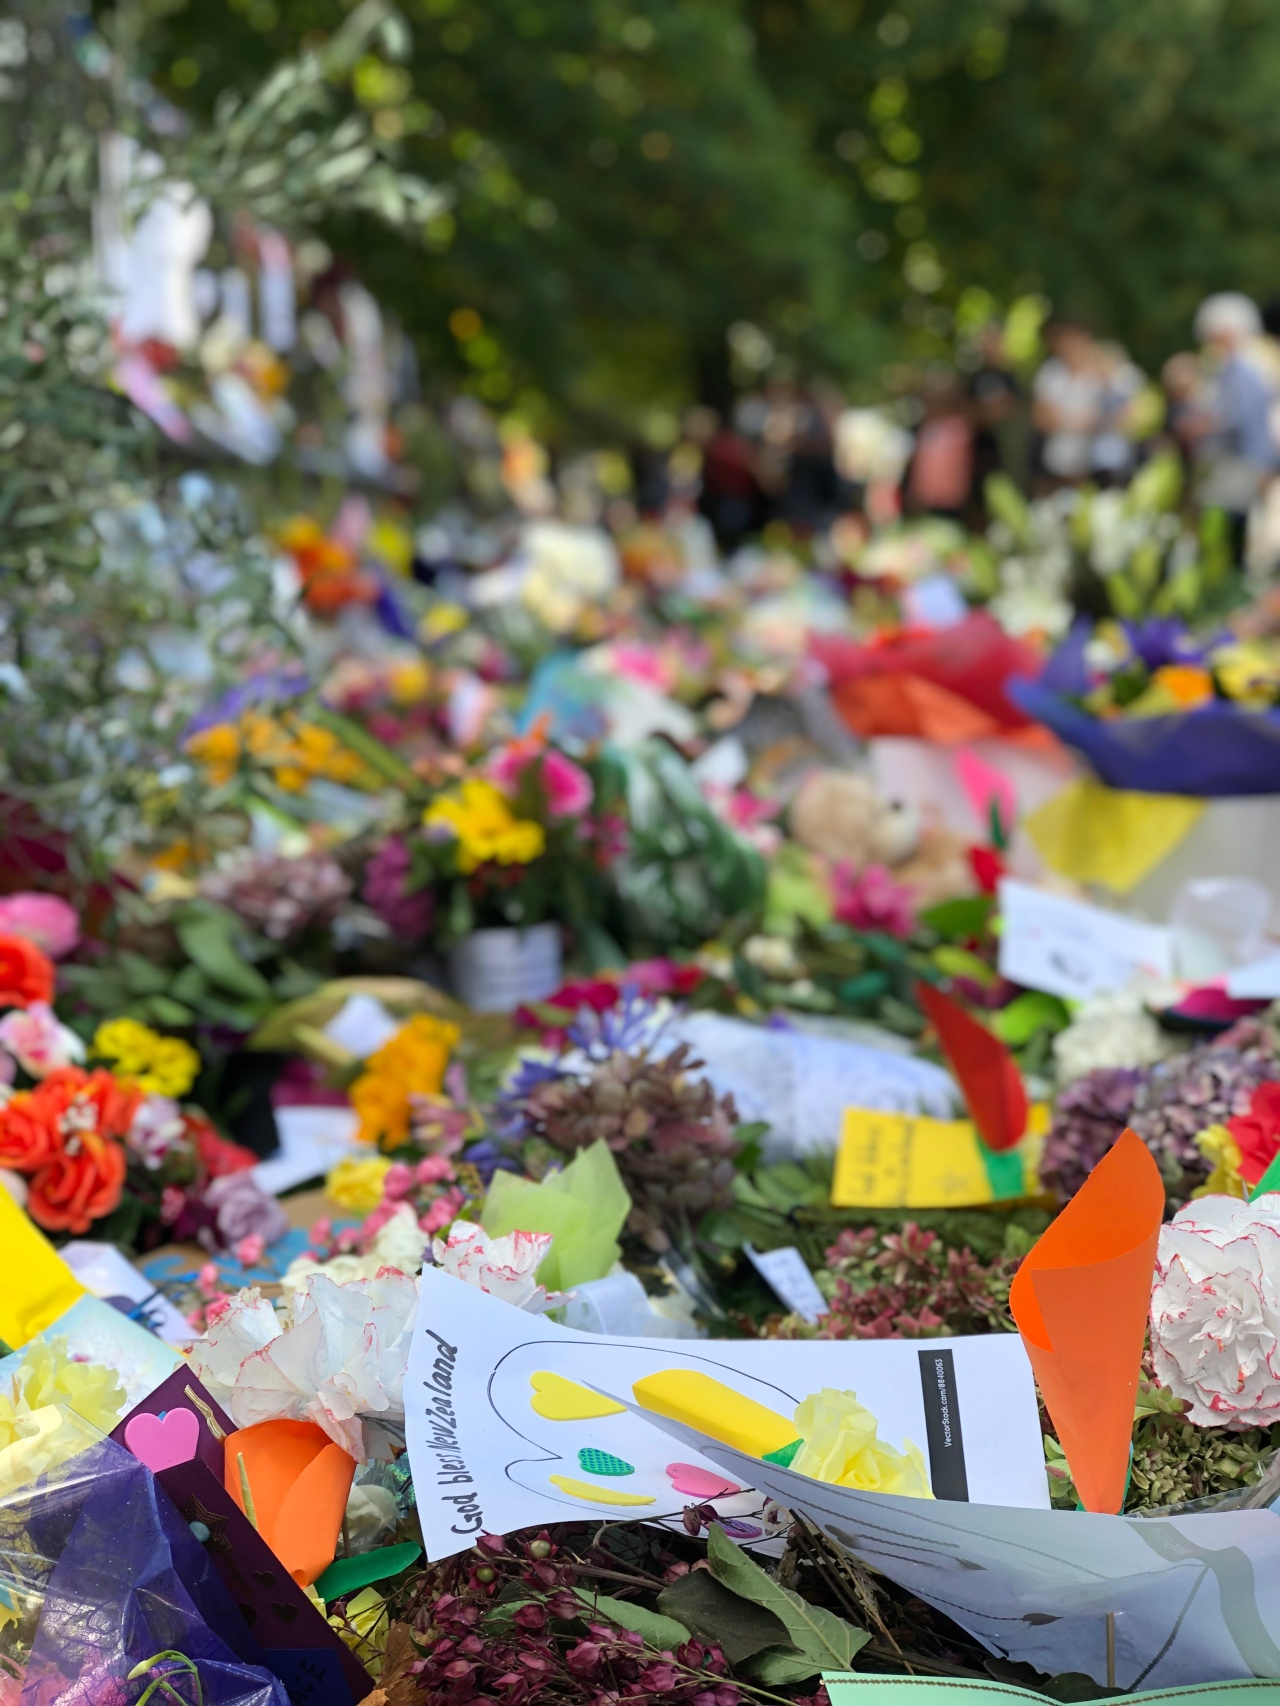 Floral tributes for the victims of the Christchurch terrorist attacks